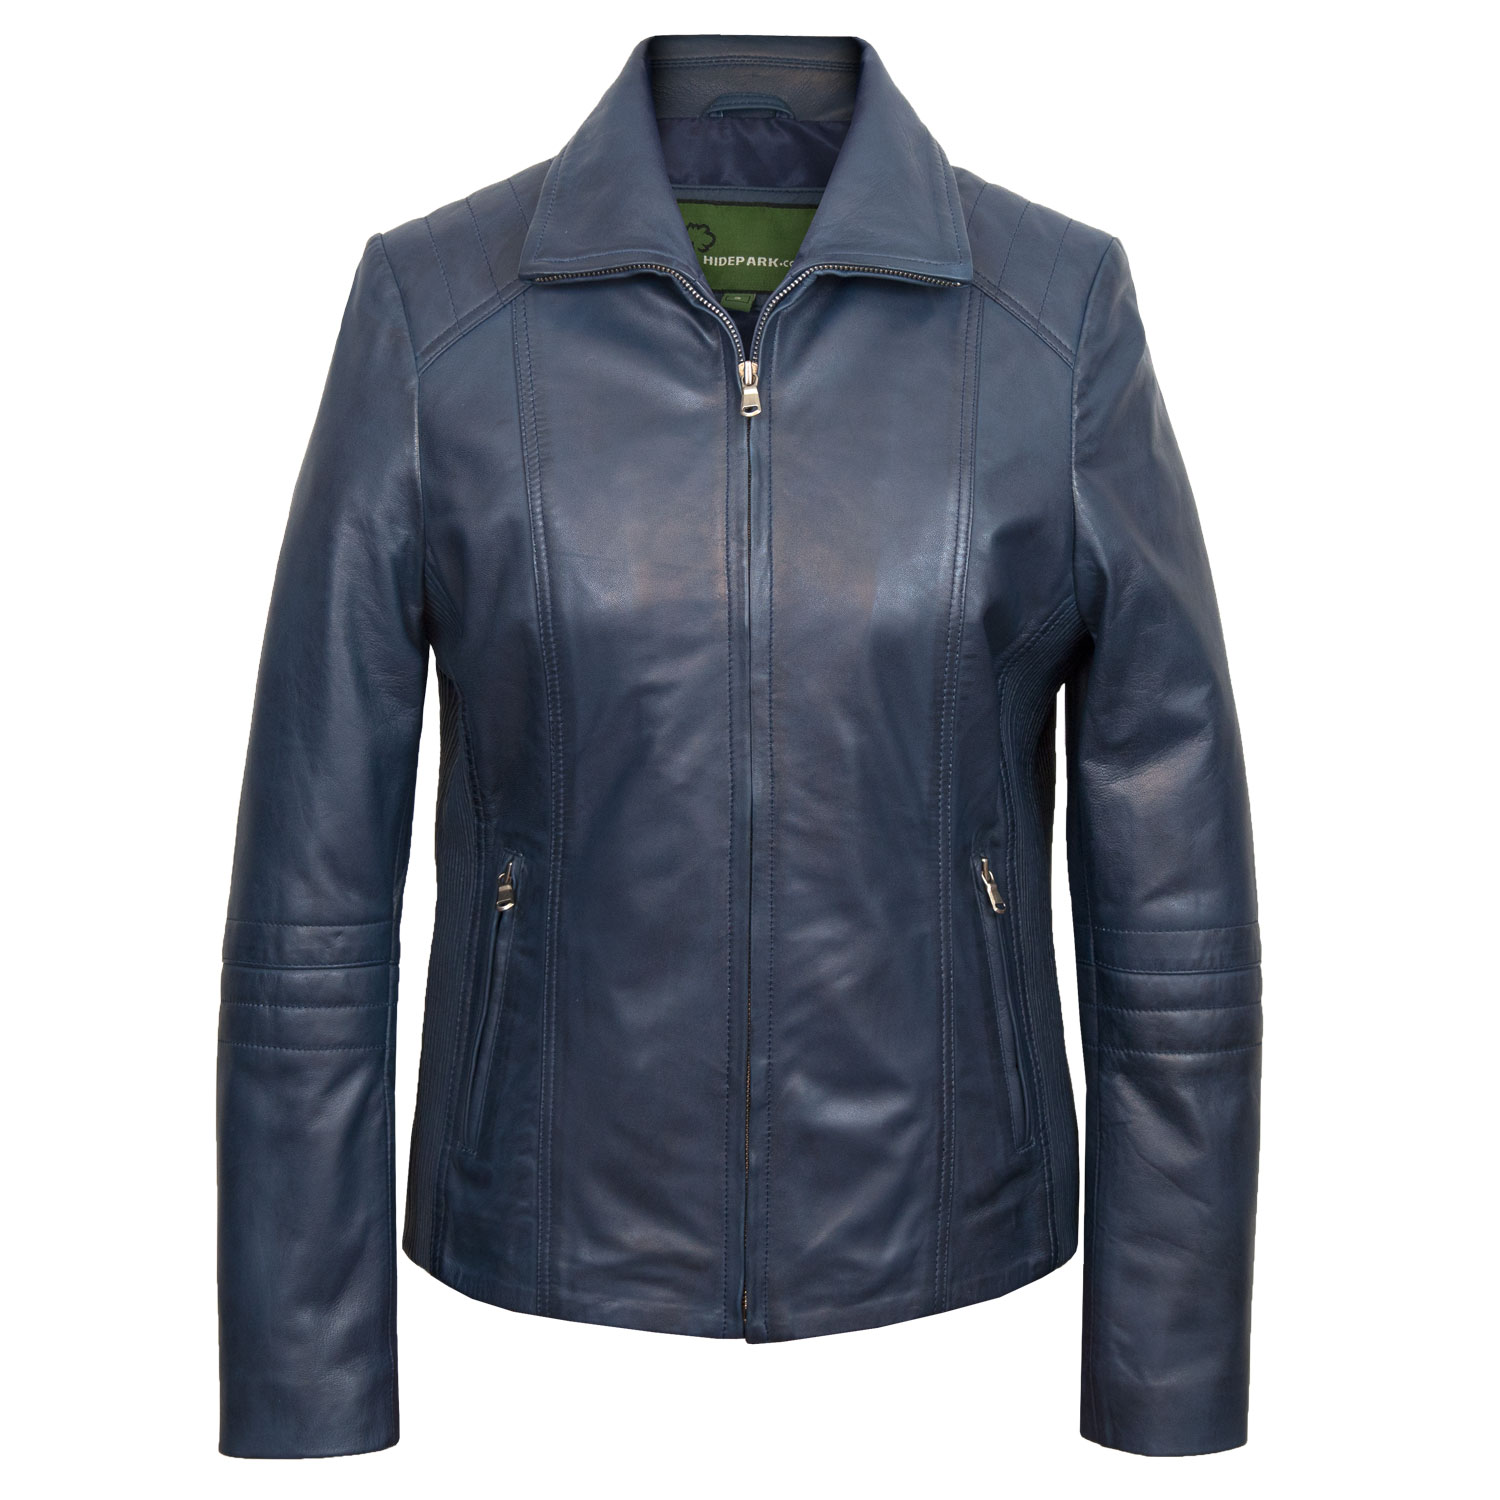 Women's Blue Leather Biker Jacket: Milly